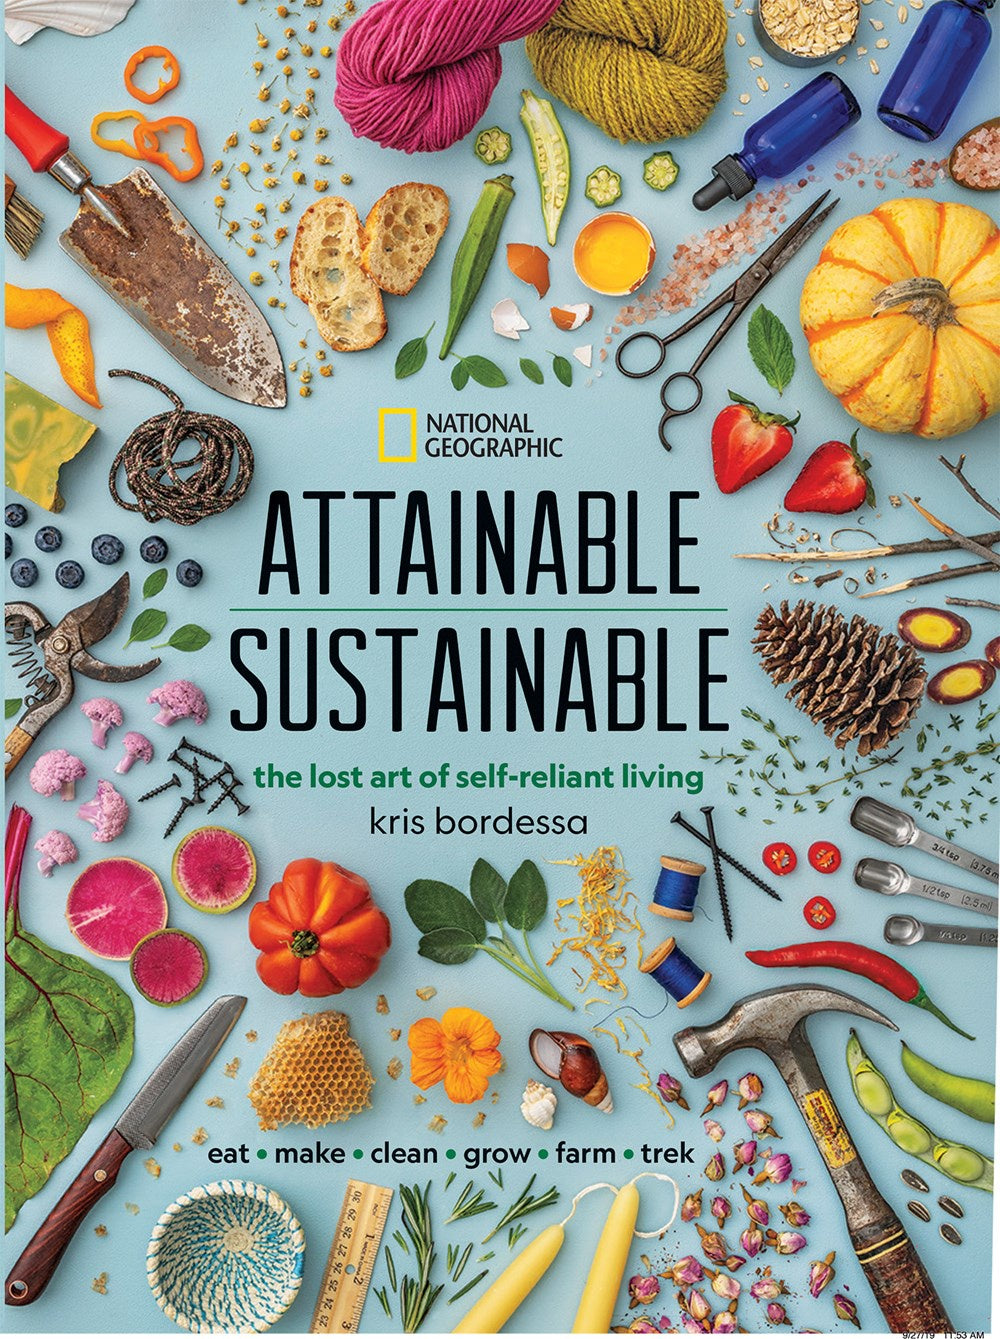 Attainable Sustainable